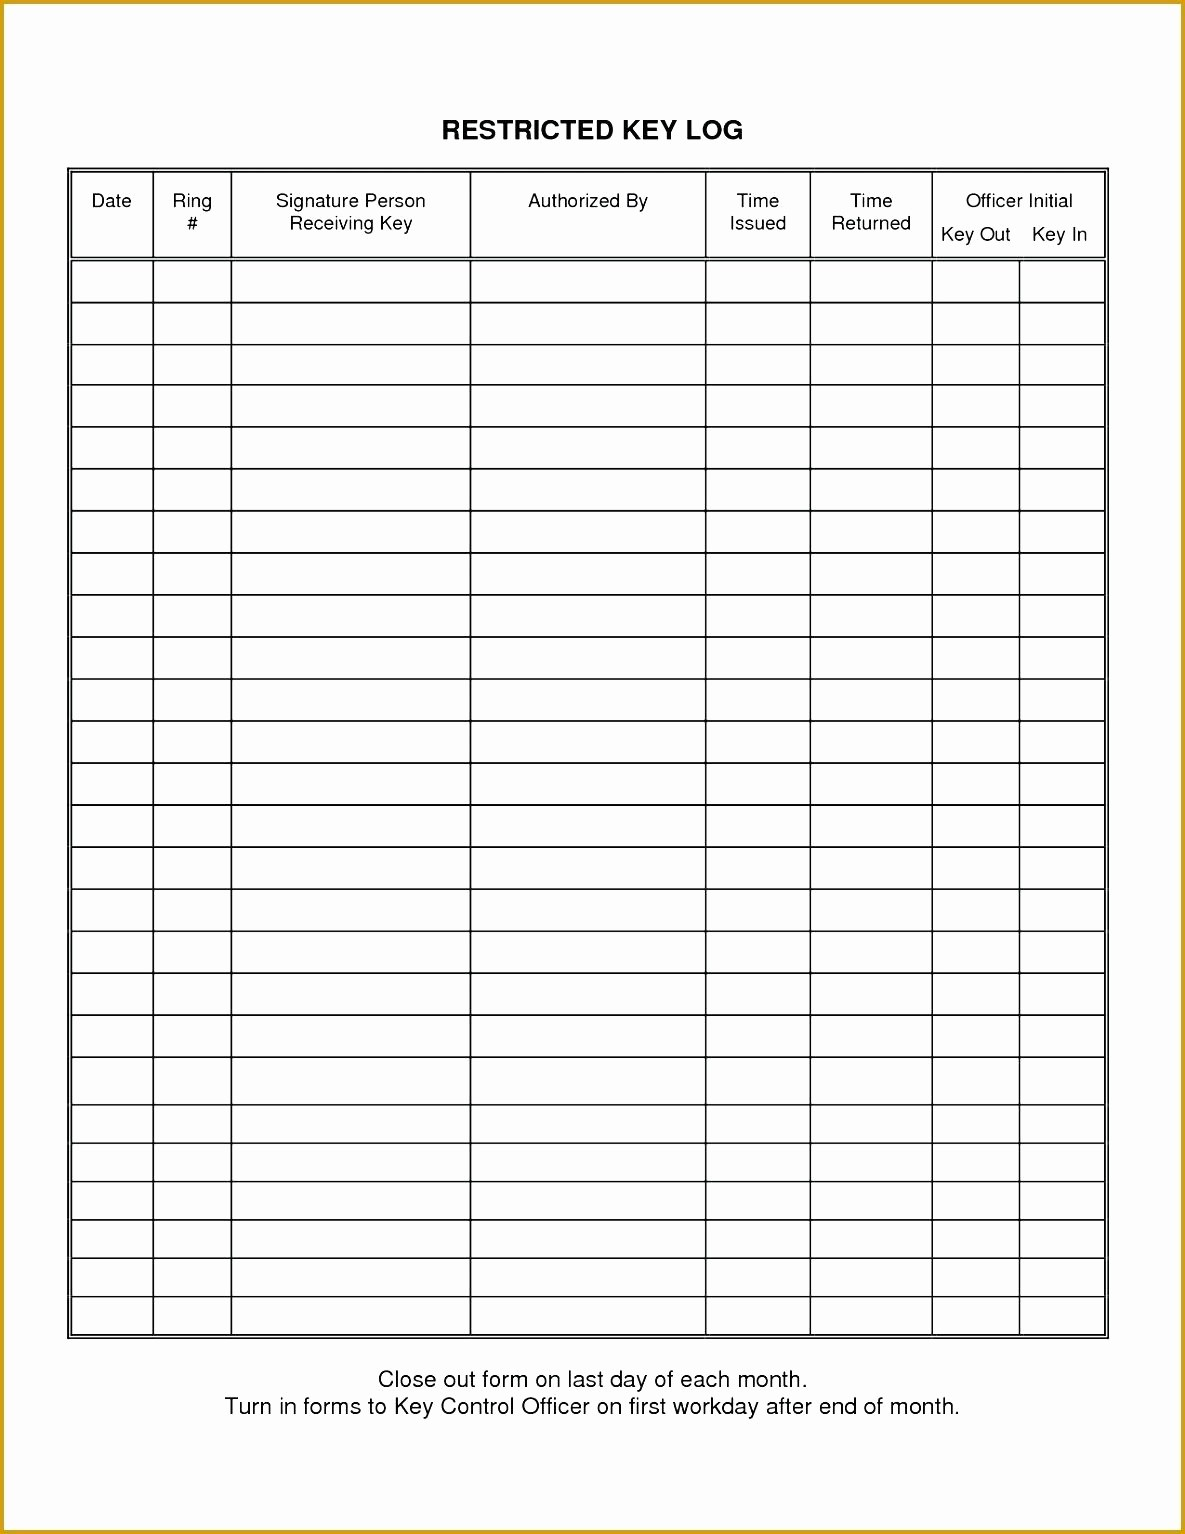 Sign Out Sheet Template Excel Beautiful Key Control form Template Ten top Risks Key Control form